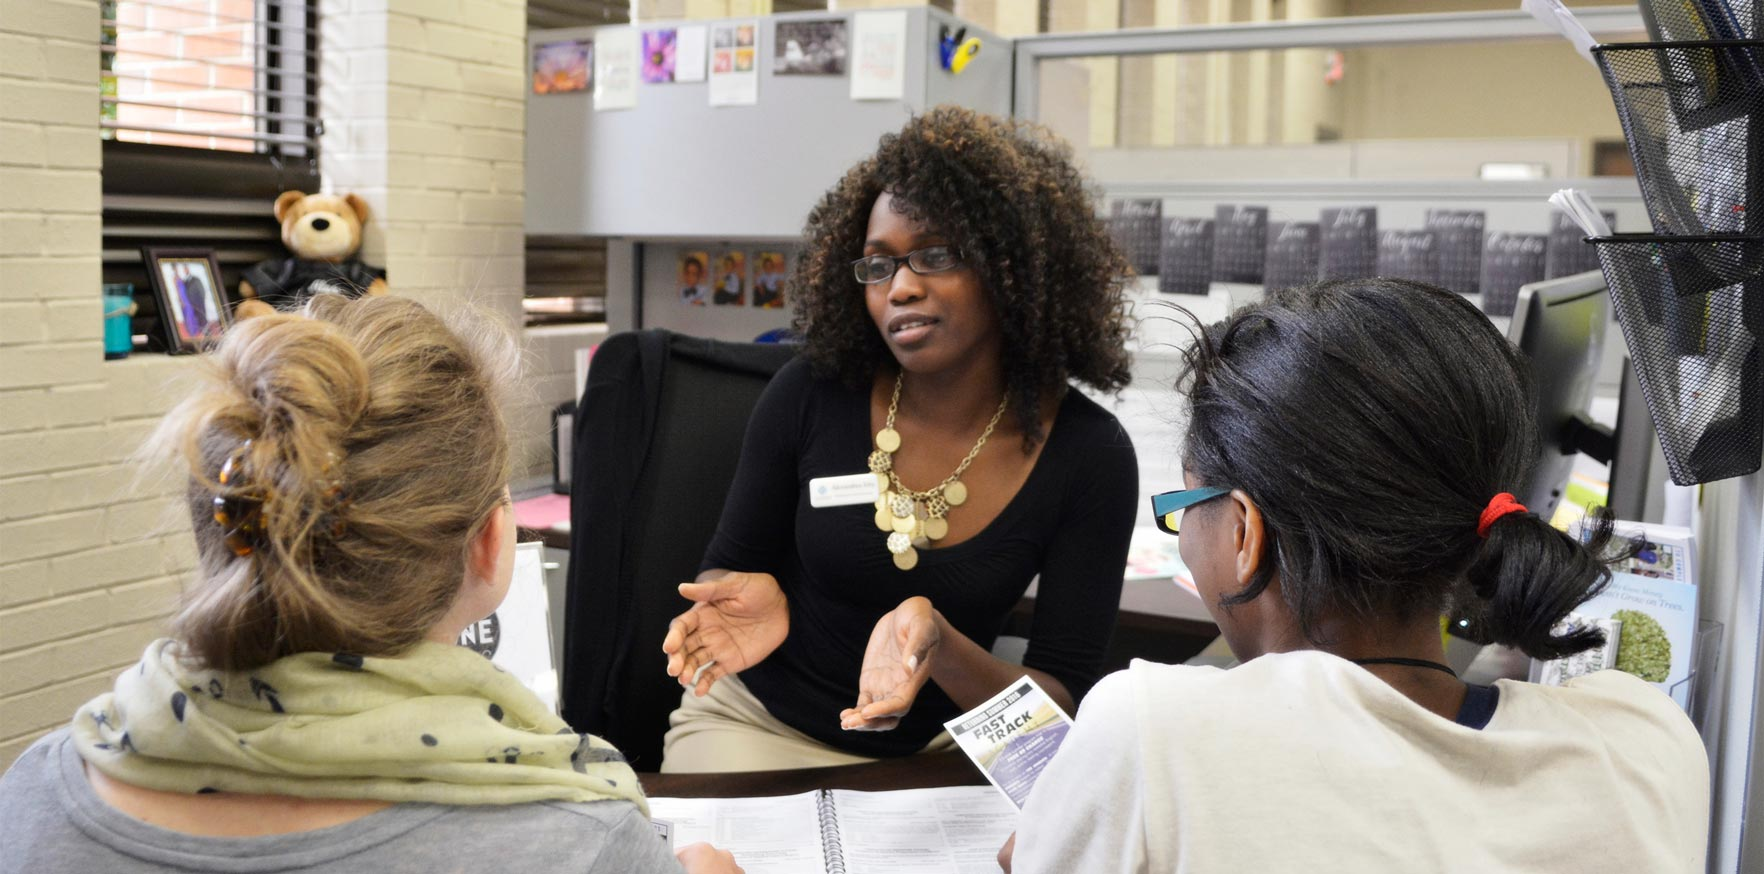 Female counselor giving information on how to apply